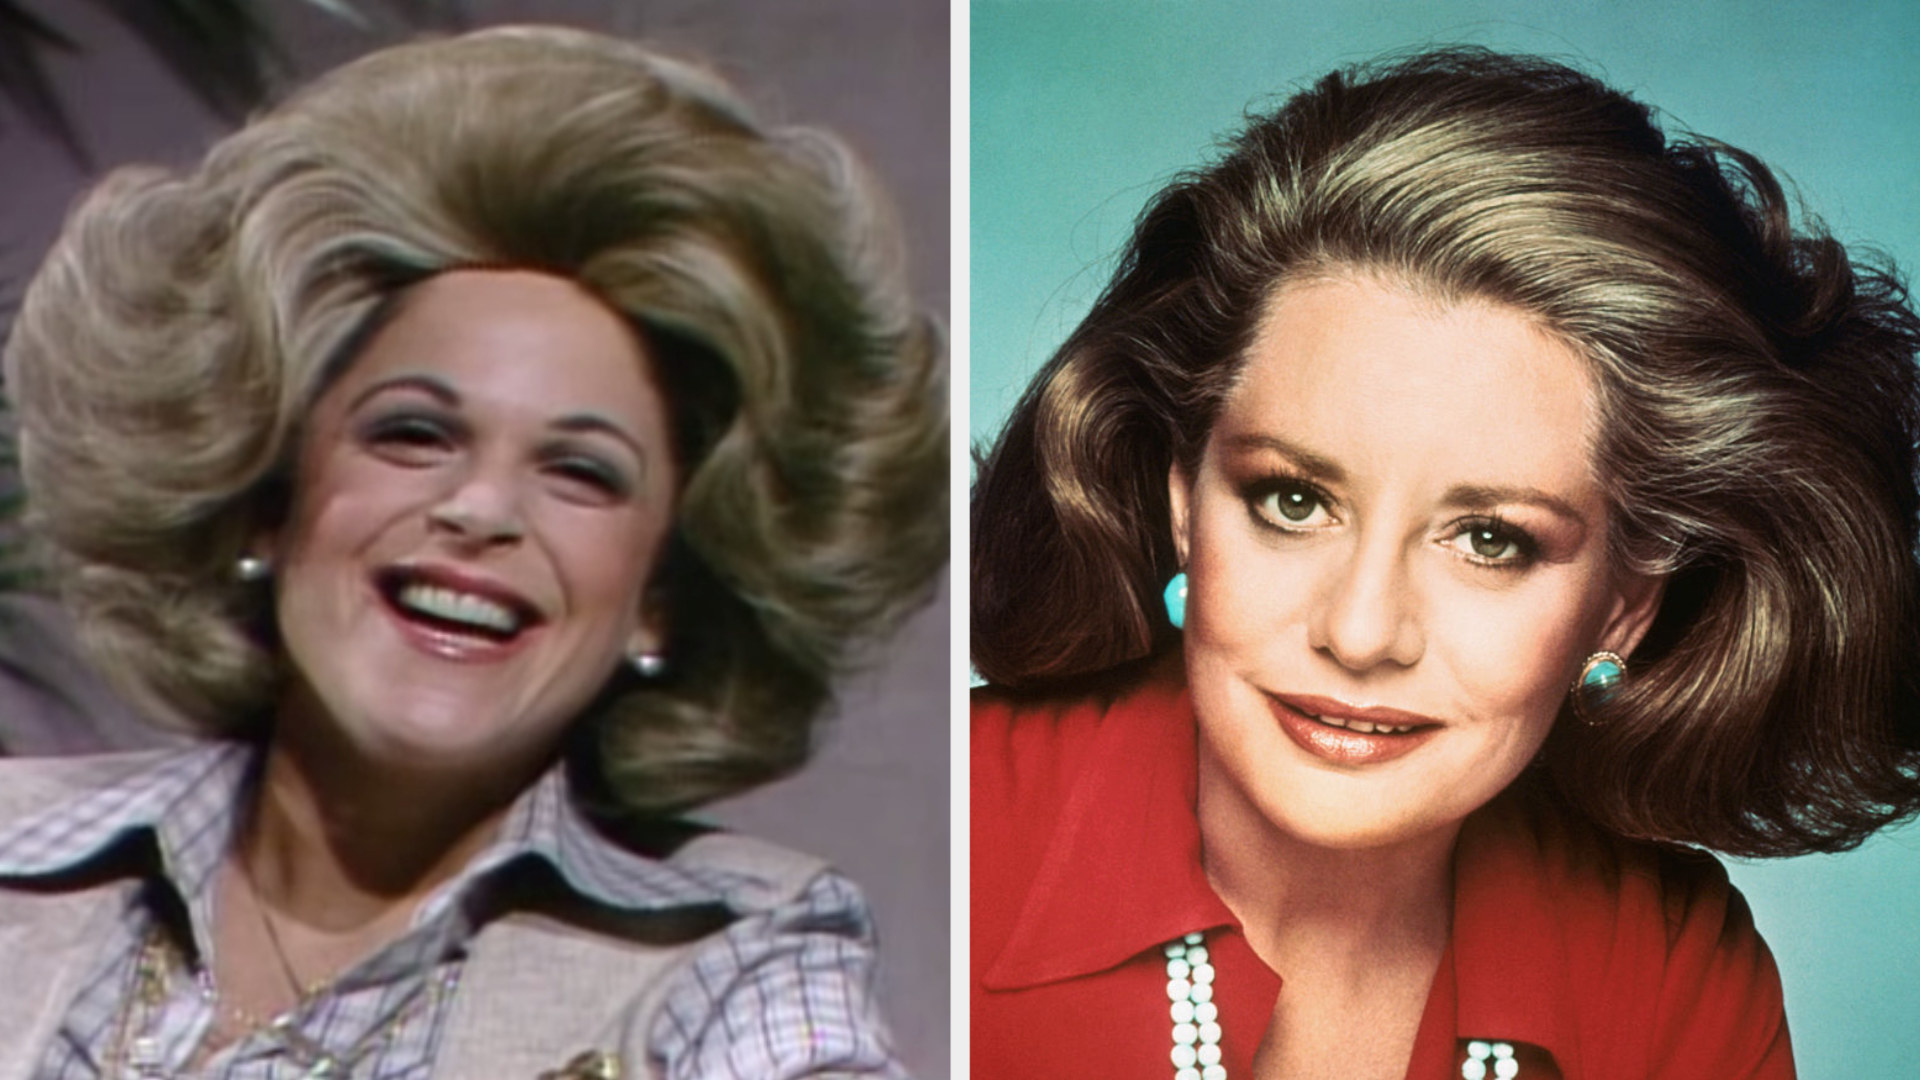 Gilda Radner wearing a voluminous blonde wig side by side with Barbara Walters with similar hair in the '70s